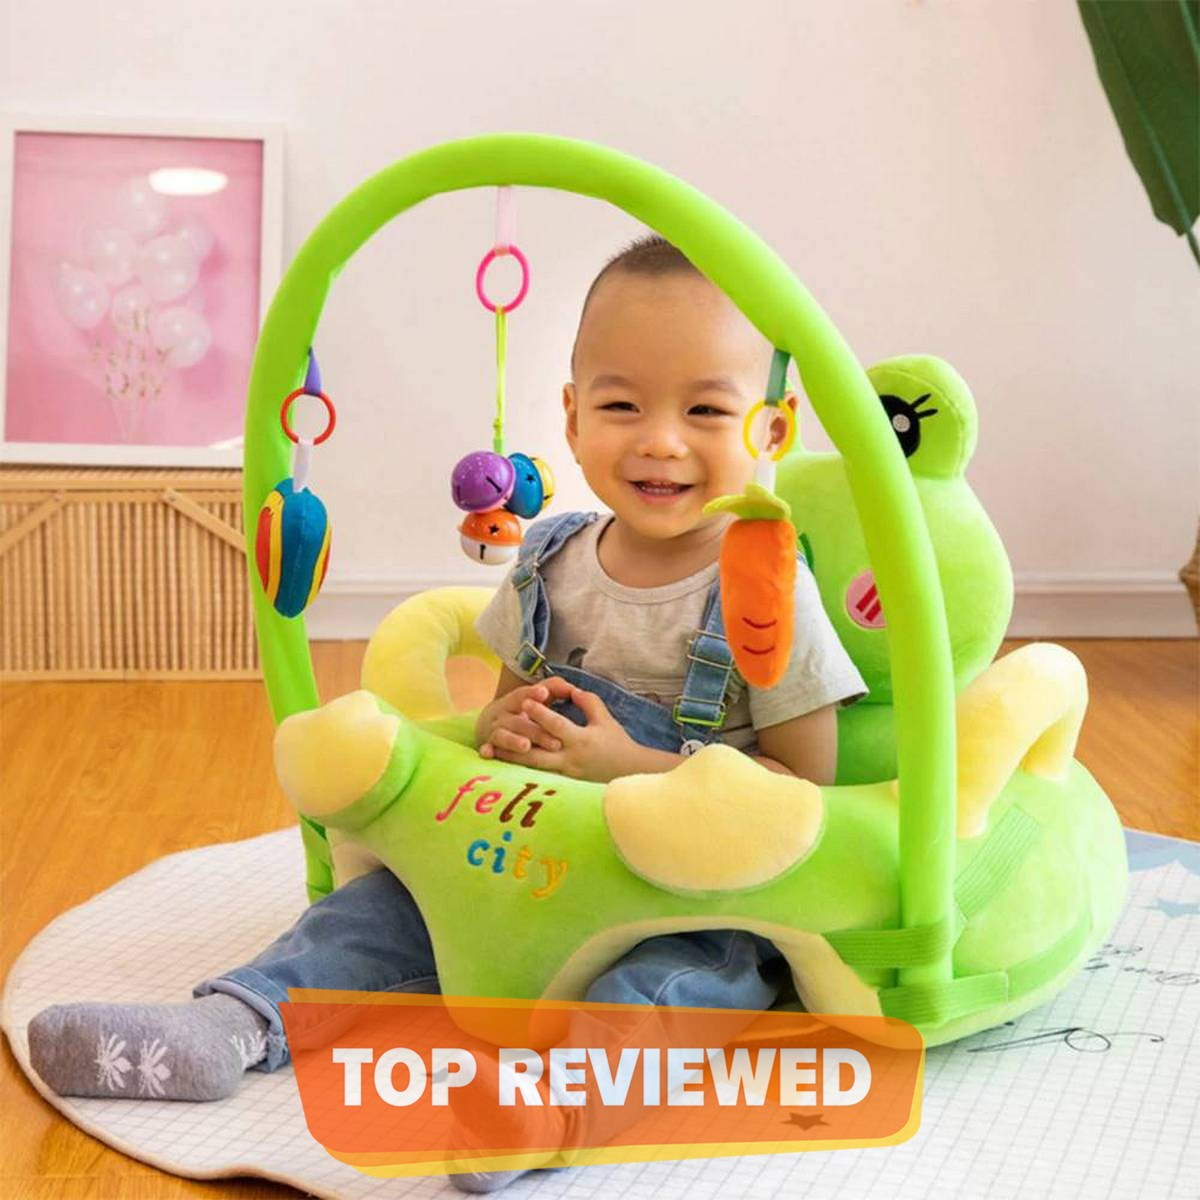 Sofa Set Support Seat Cover Baby Plush Chair Cartoon Learning Sit Plush Chair Toddler Nest Puff Washable With Rod Toys